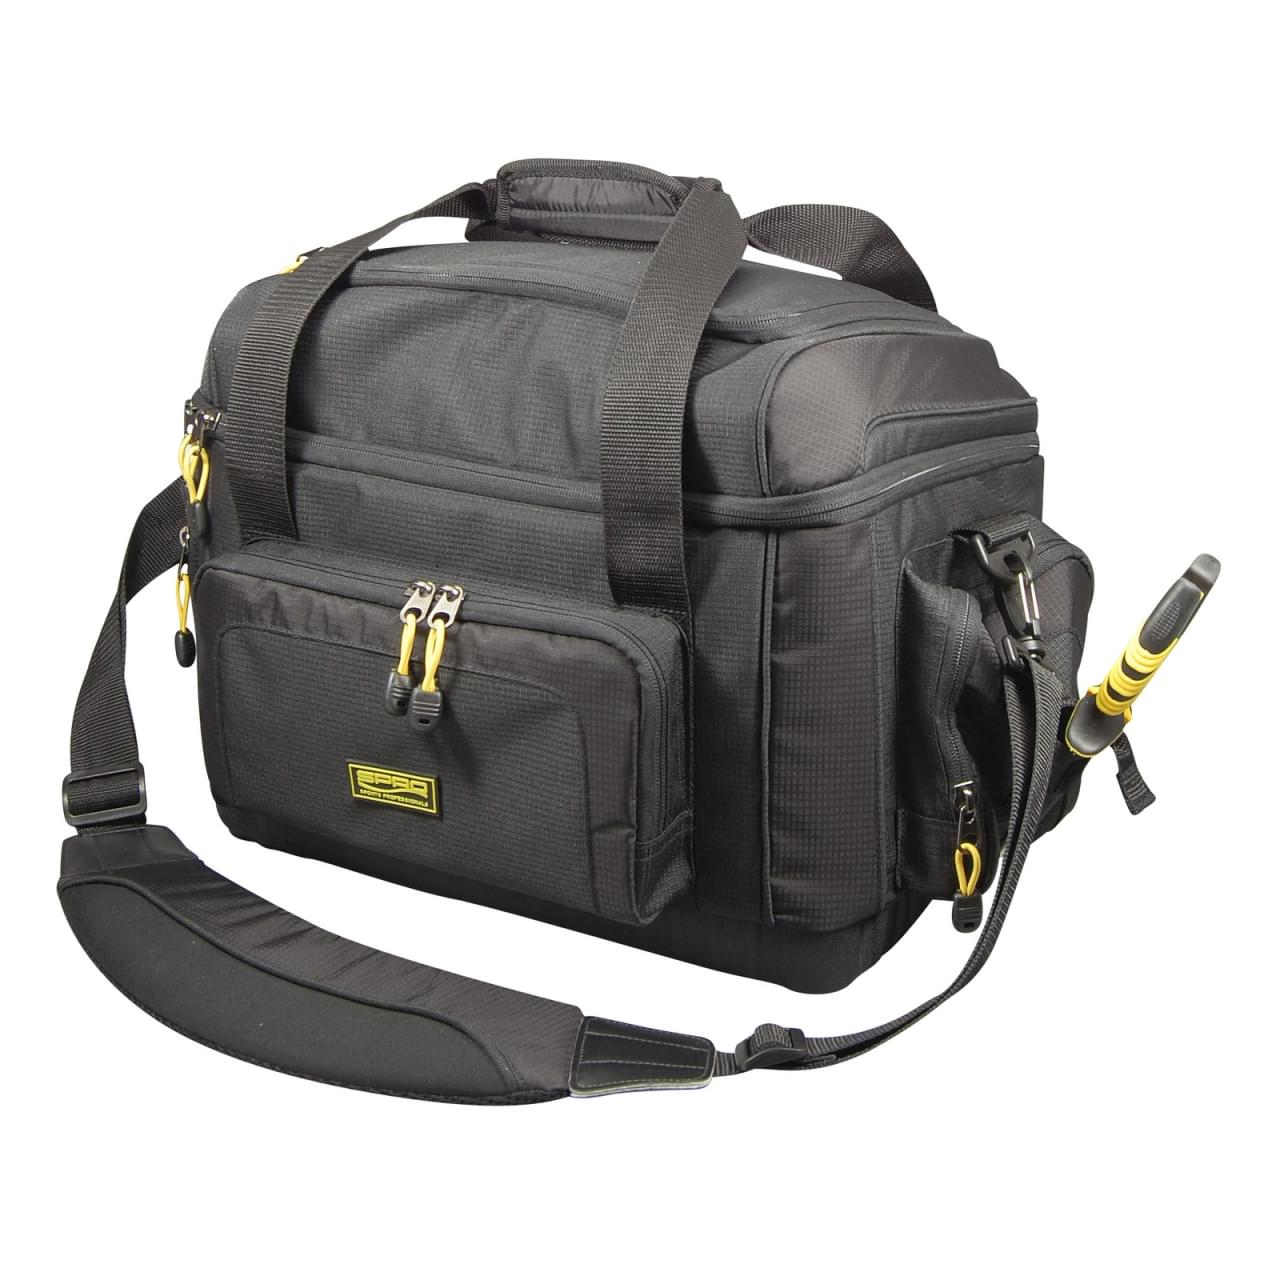 Spro Tackle Bag met 5 Tackle Boxen